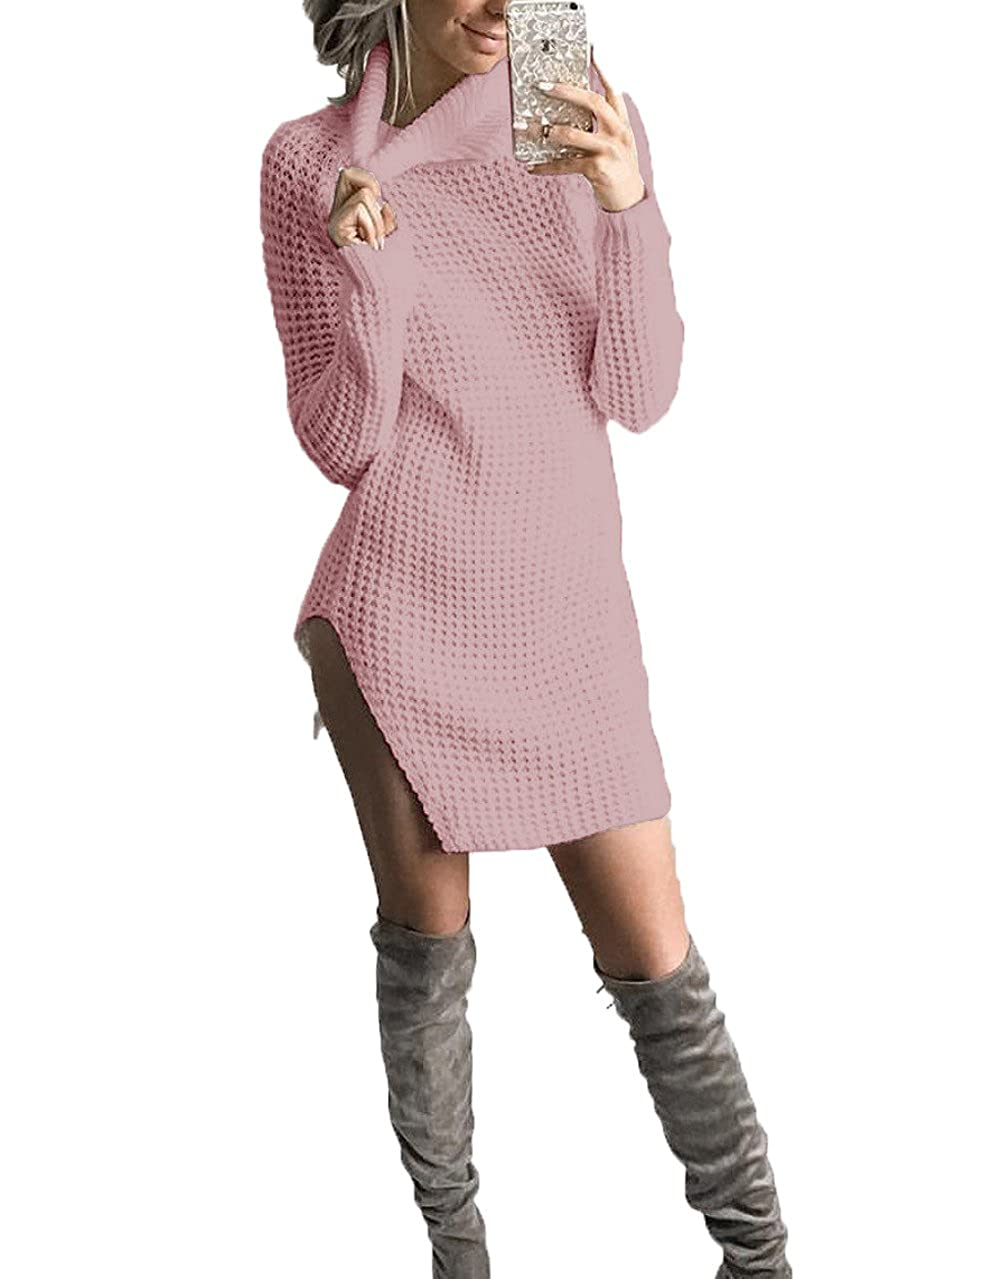 ZHENZHONG Women's Turtleneck Long Sleeve Slim Fit Knit Pullover Sweater Dress